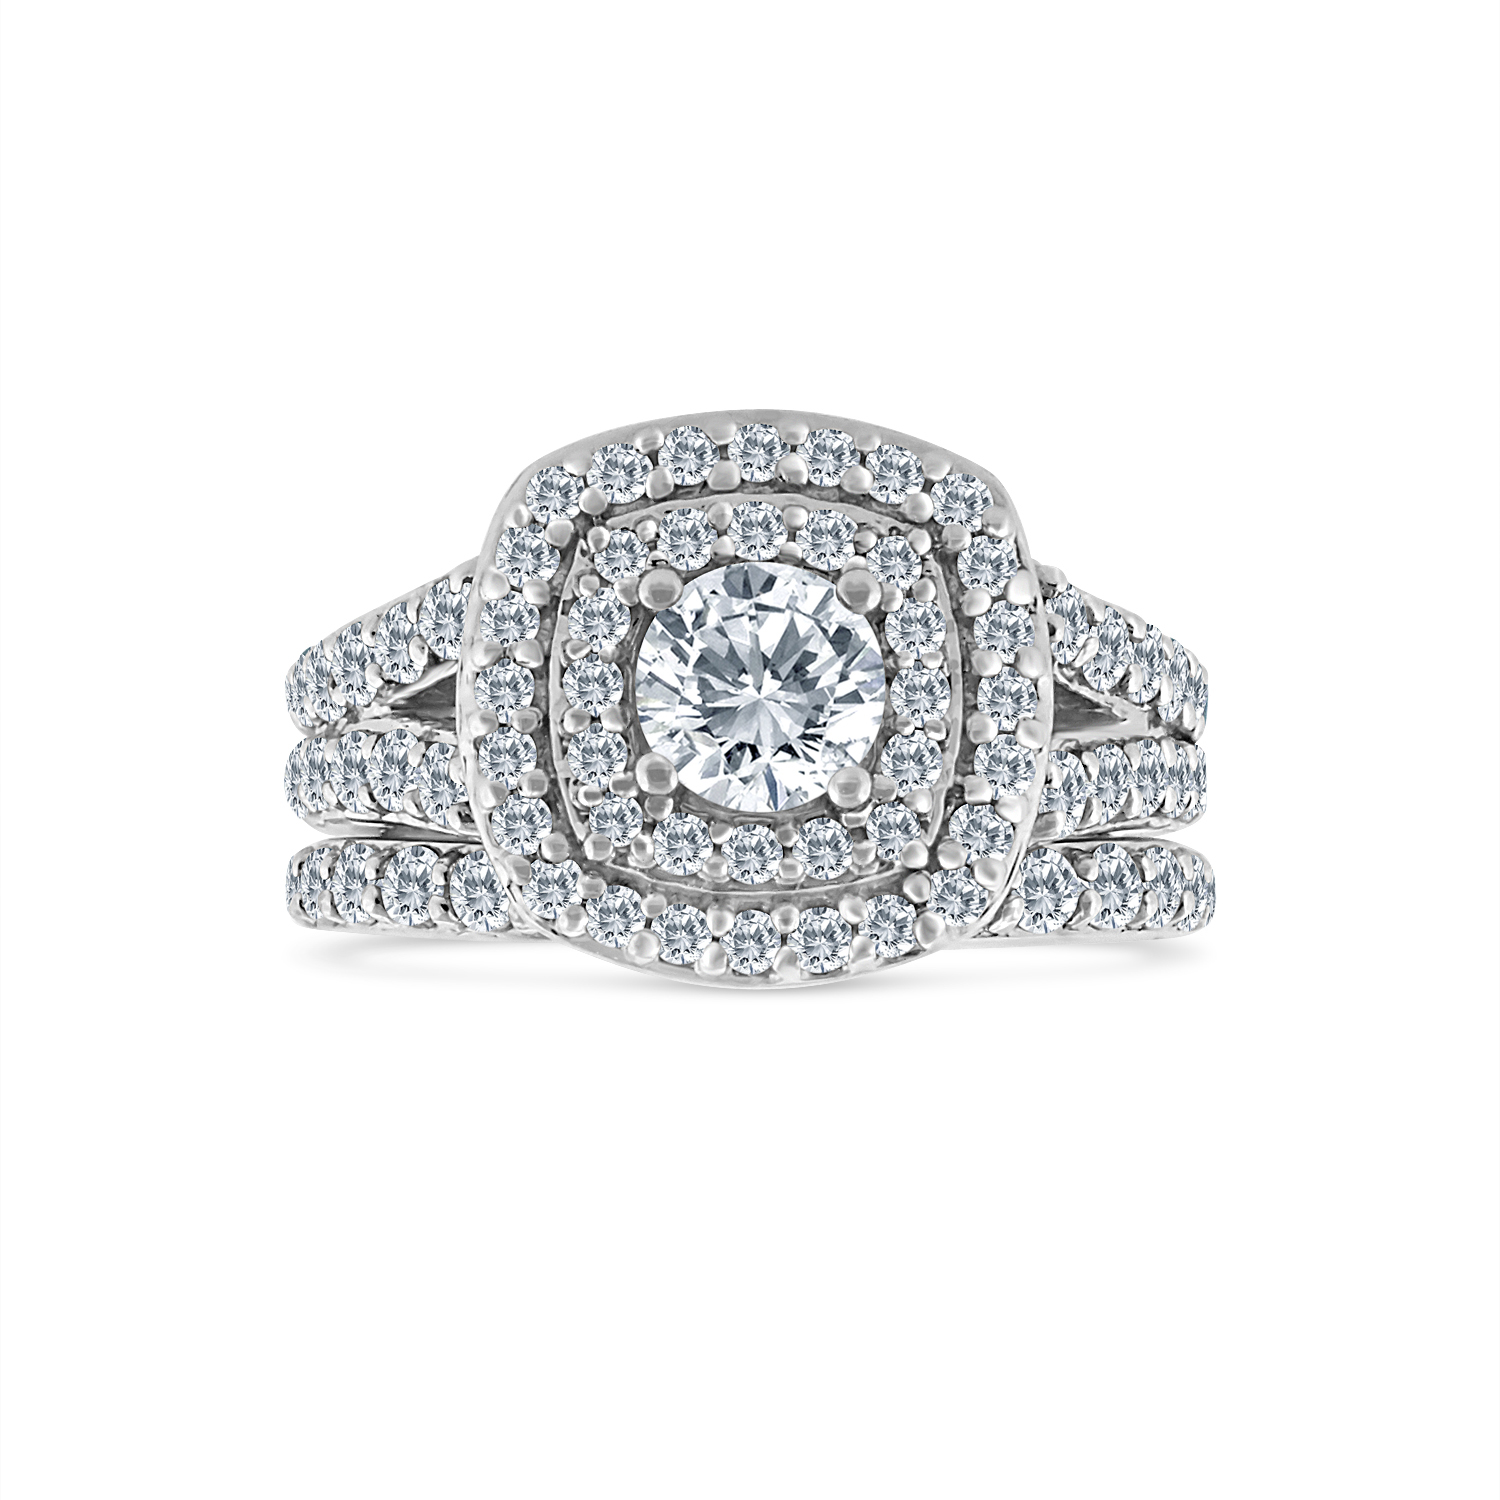 3.00ct Cushion Halo Diamond Engagement Wedding Ring Set 10K White Gold by Sk Jewel,Inc